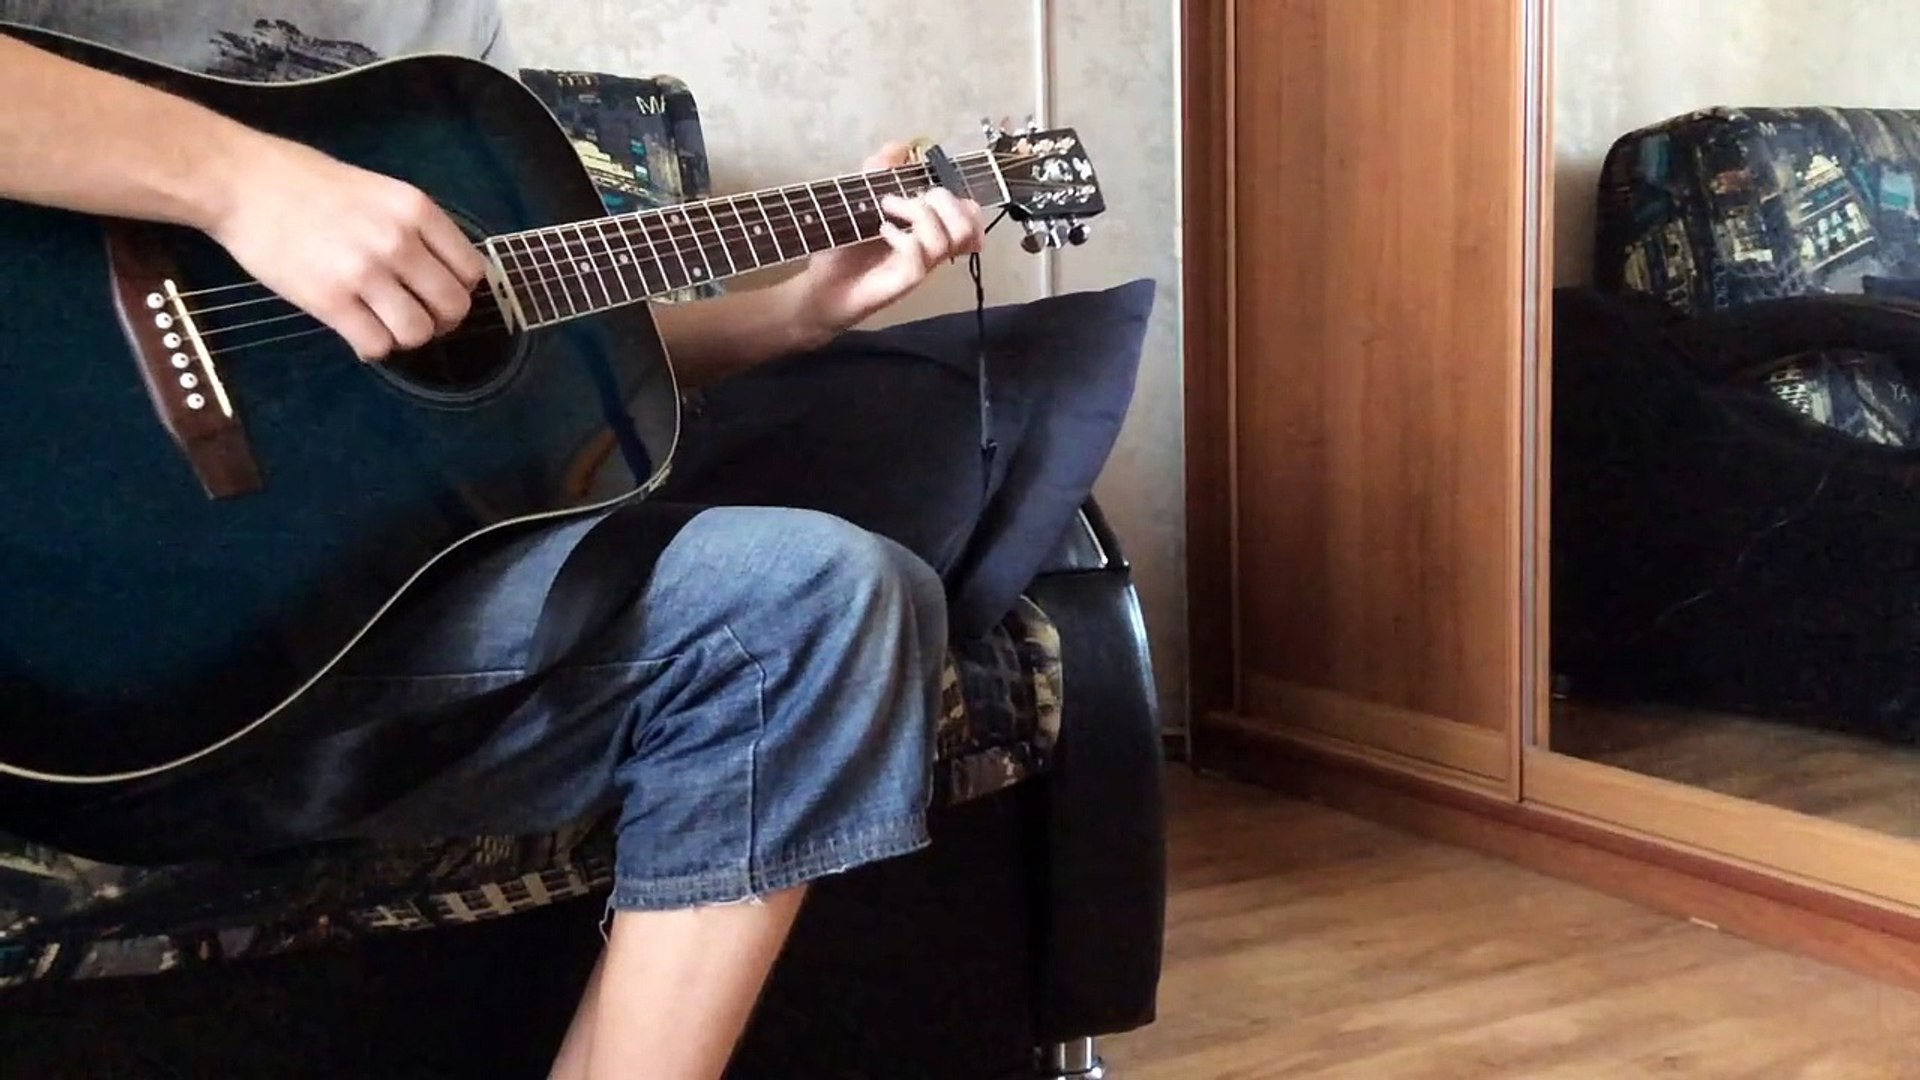 [Roxette] Listen to your heart - Acoustic guitar cover (Fingerstyle)